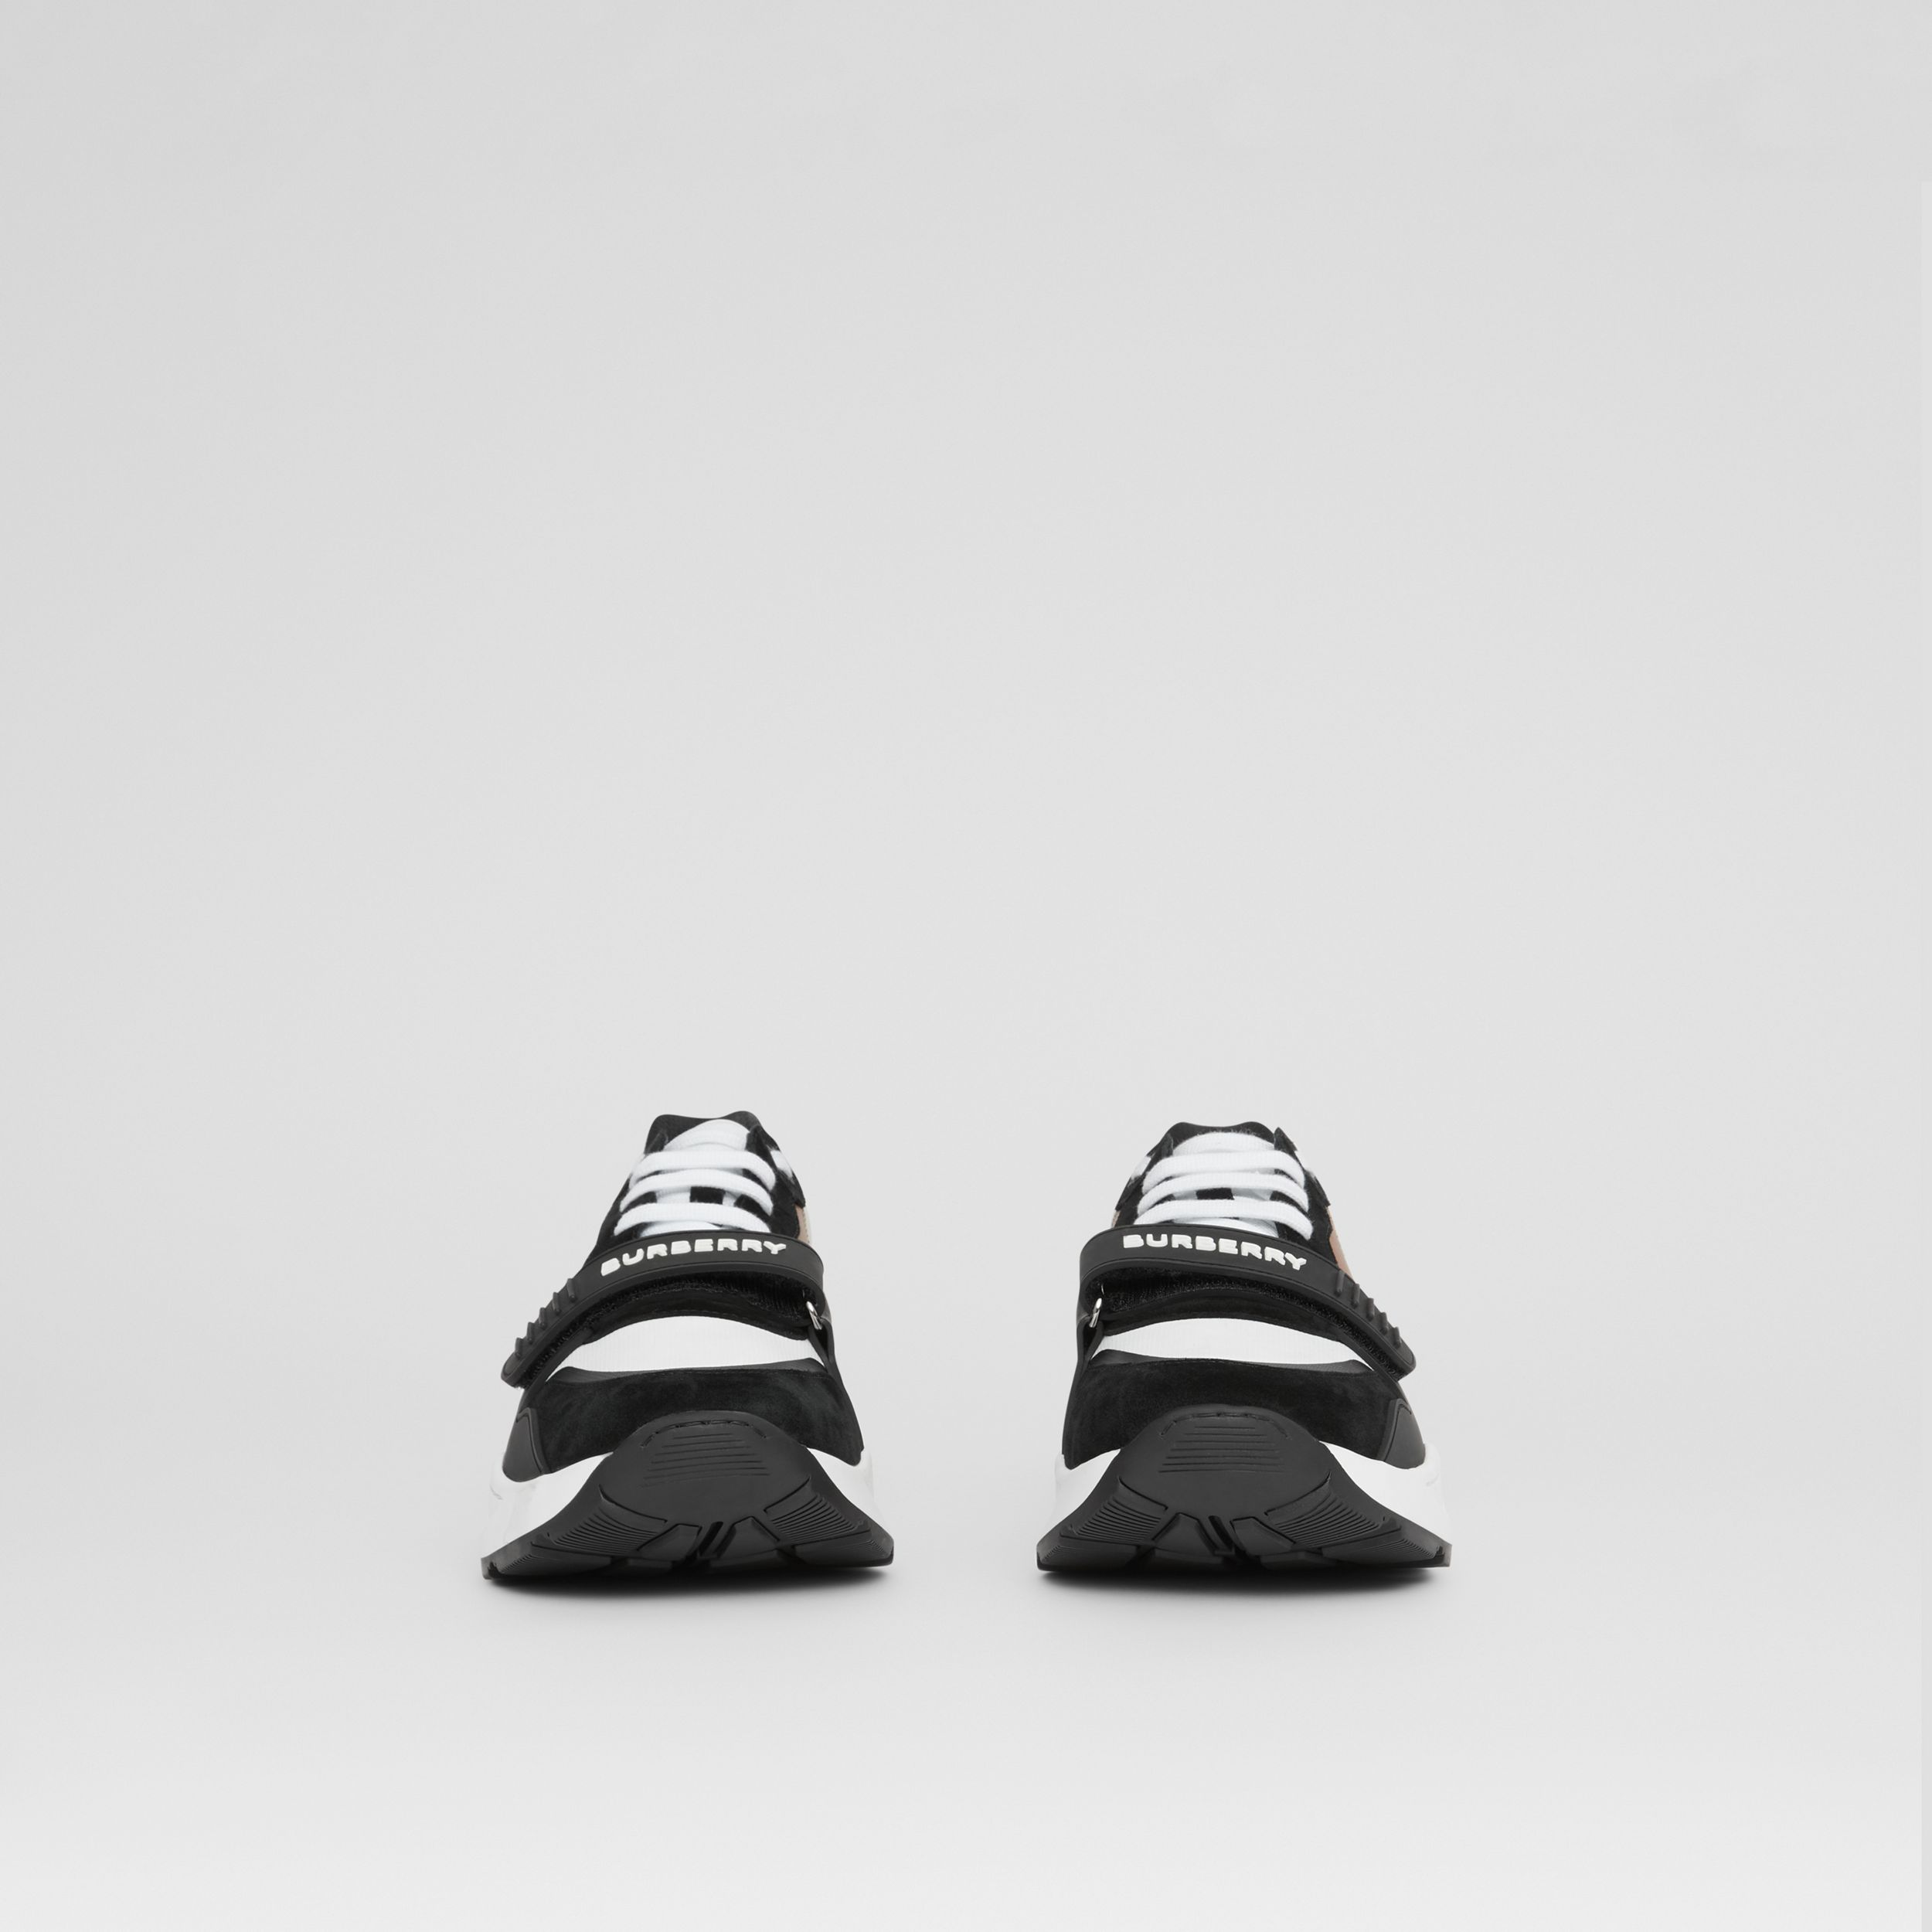 Leather, Suede and Vintage Check Sneakers in Black/archive Beige - Men | Burberry - 4